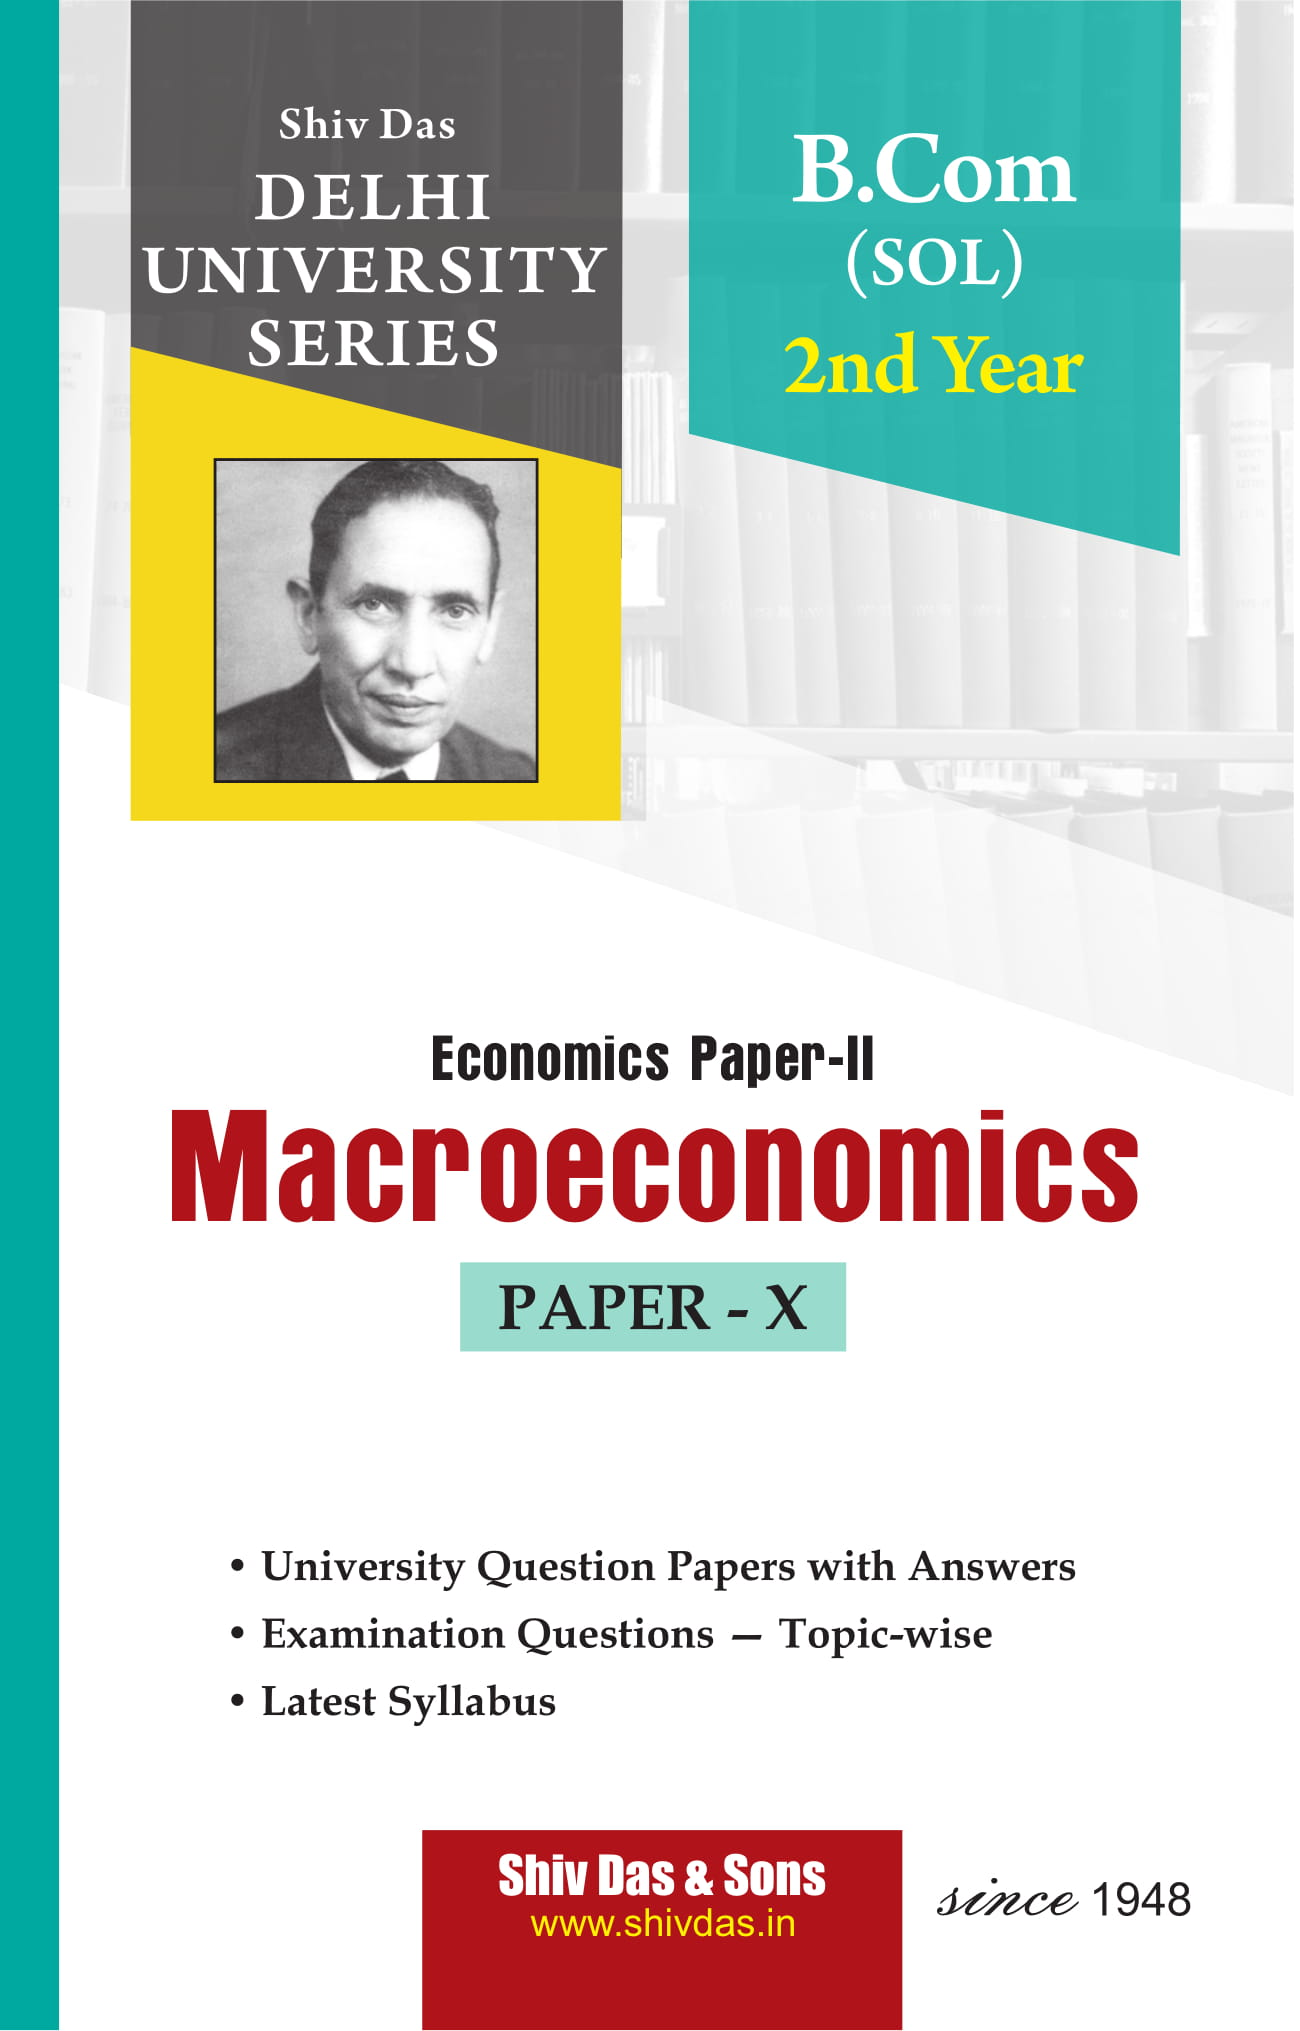 Macroeconomics (Eng. Medium) for B.Com 2nd Year SOL/External